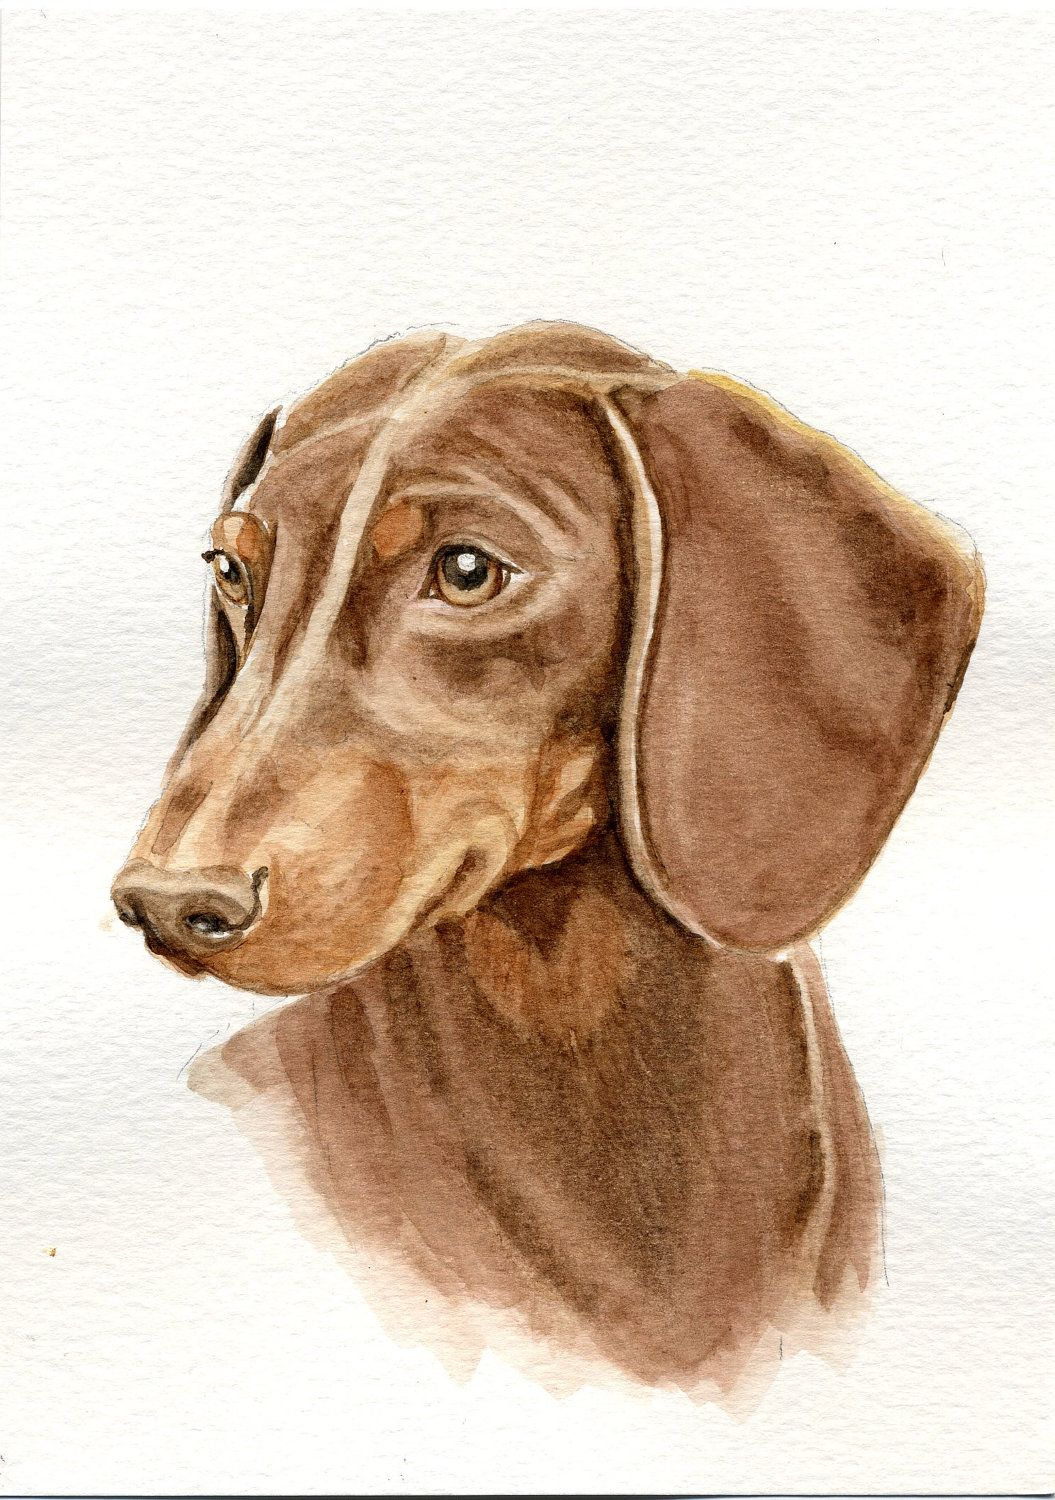 Dachshund Home Decor Red Dachsund Dog Painting 5x7 Print From Original Watercolor